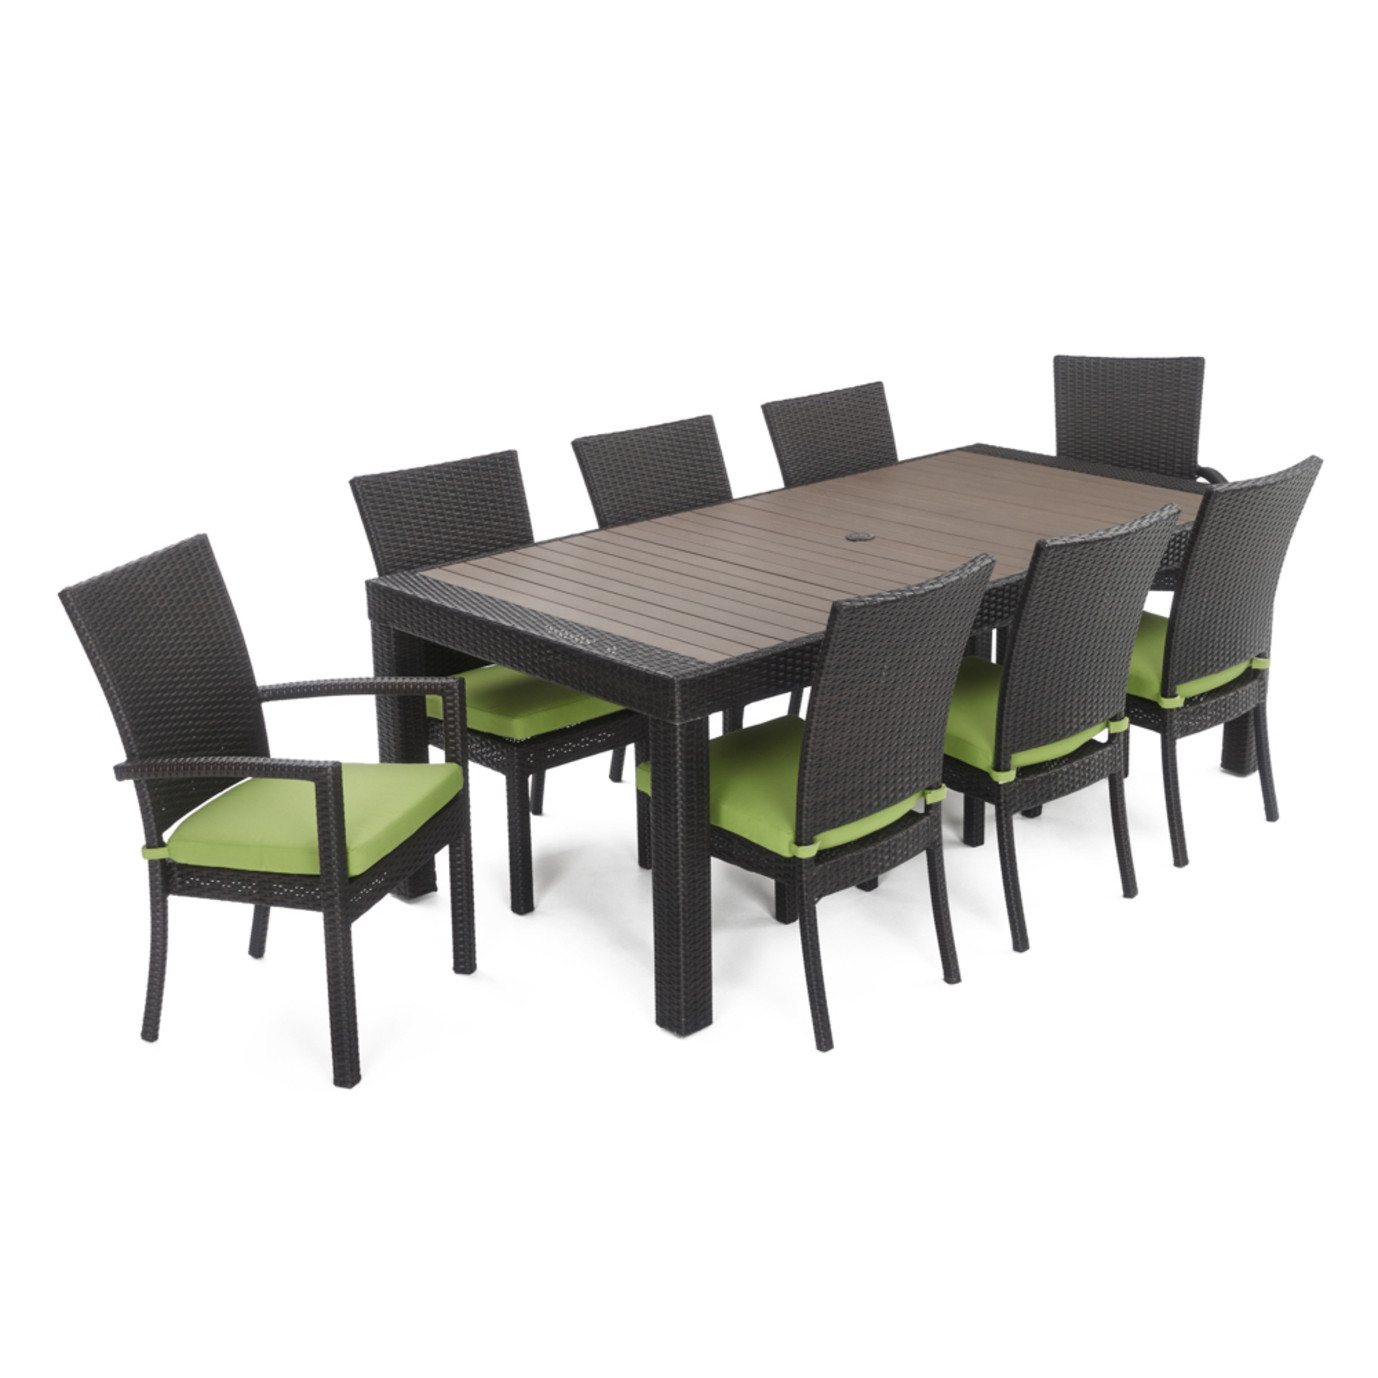 Deco™ 9pc Dining Set - Ginkgo Green